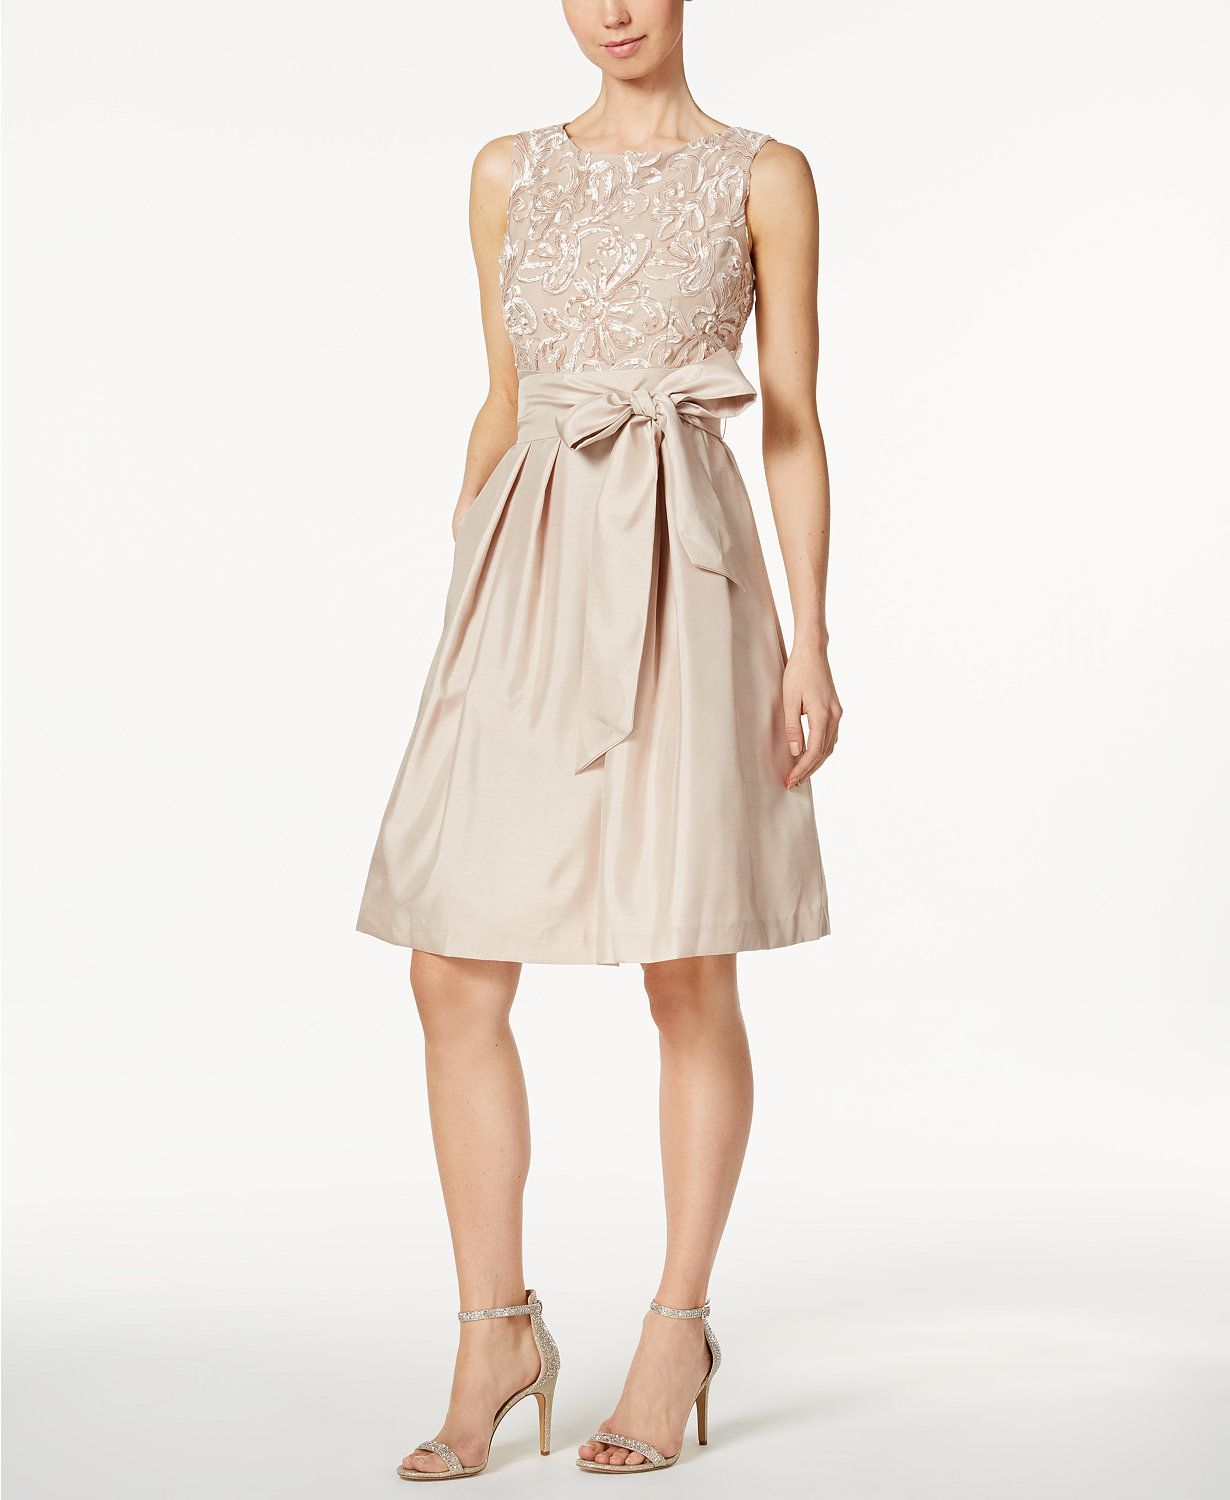 Wedding dresses at macy's  Jessica Howard Embroidered Sash Fit u Flare Dress  macys